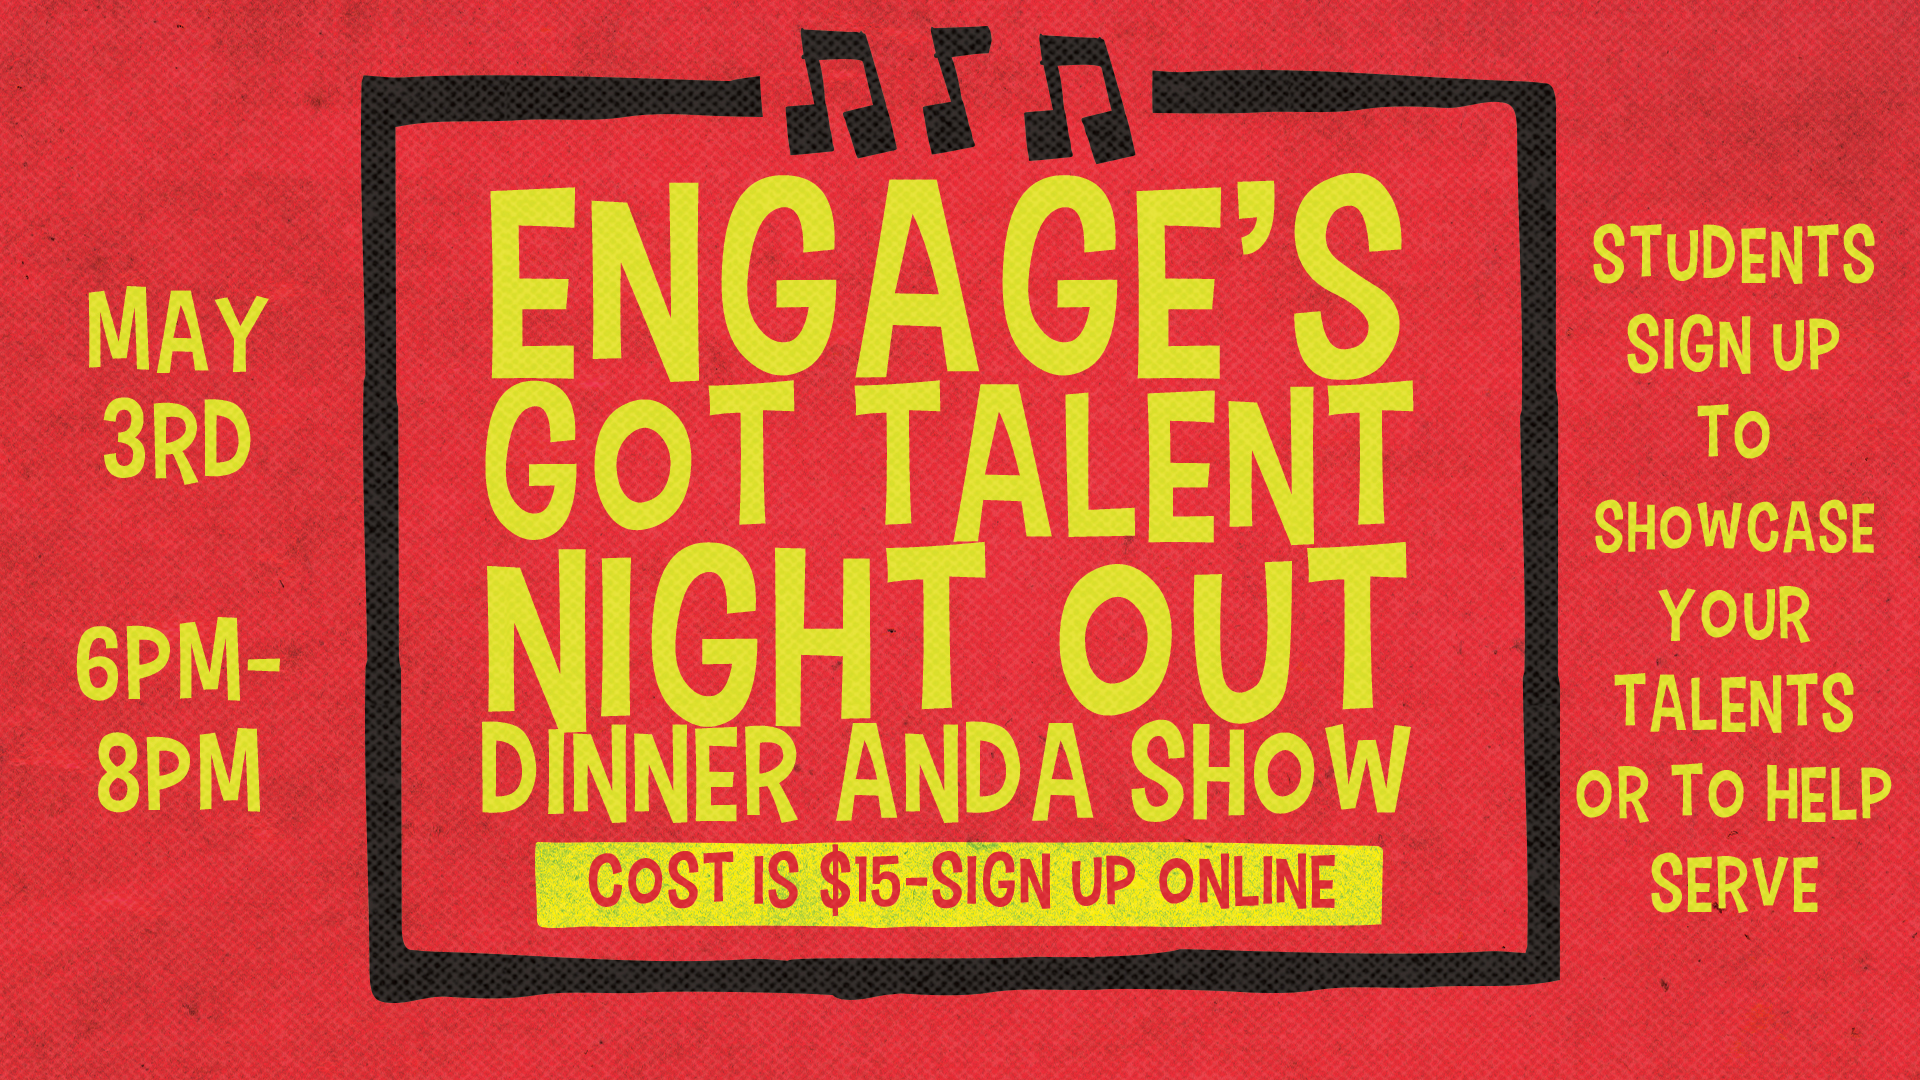 engage'sgottalent.jpg